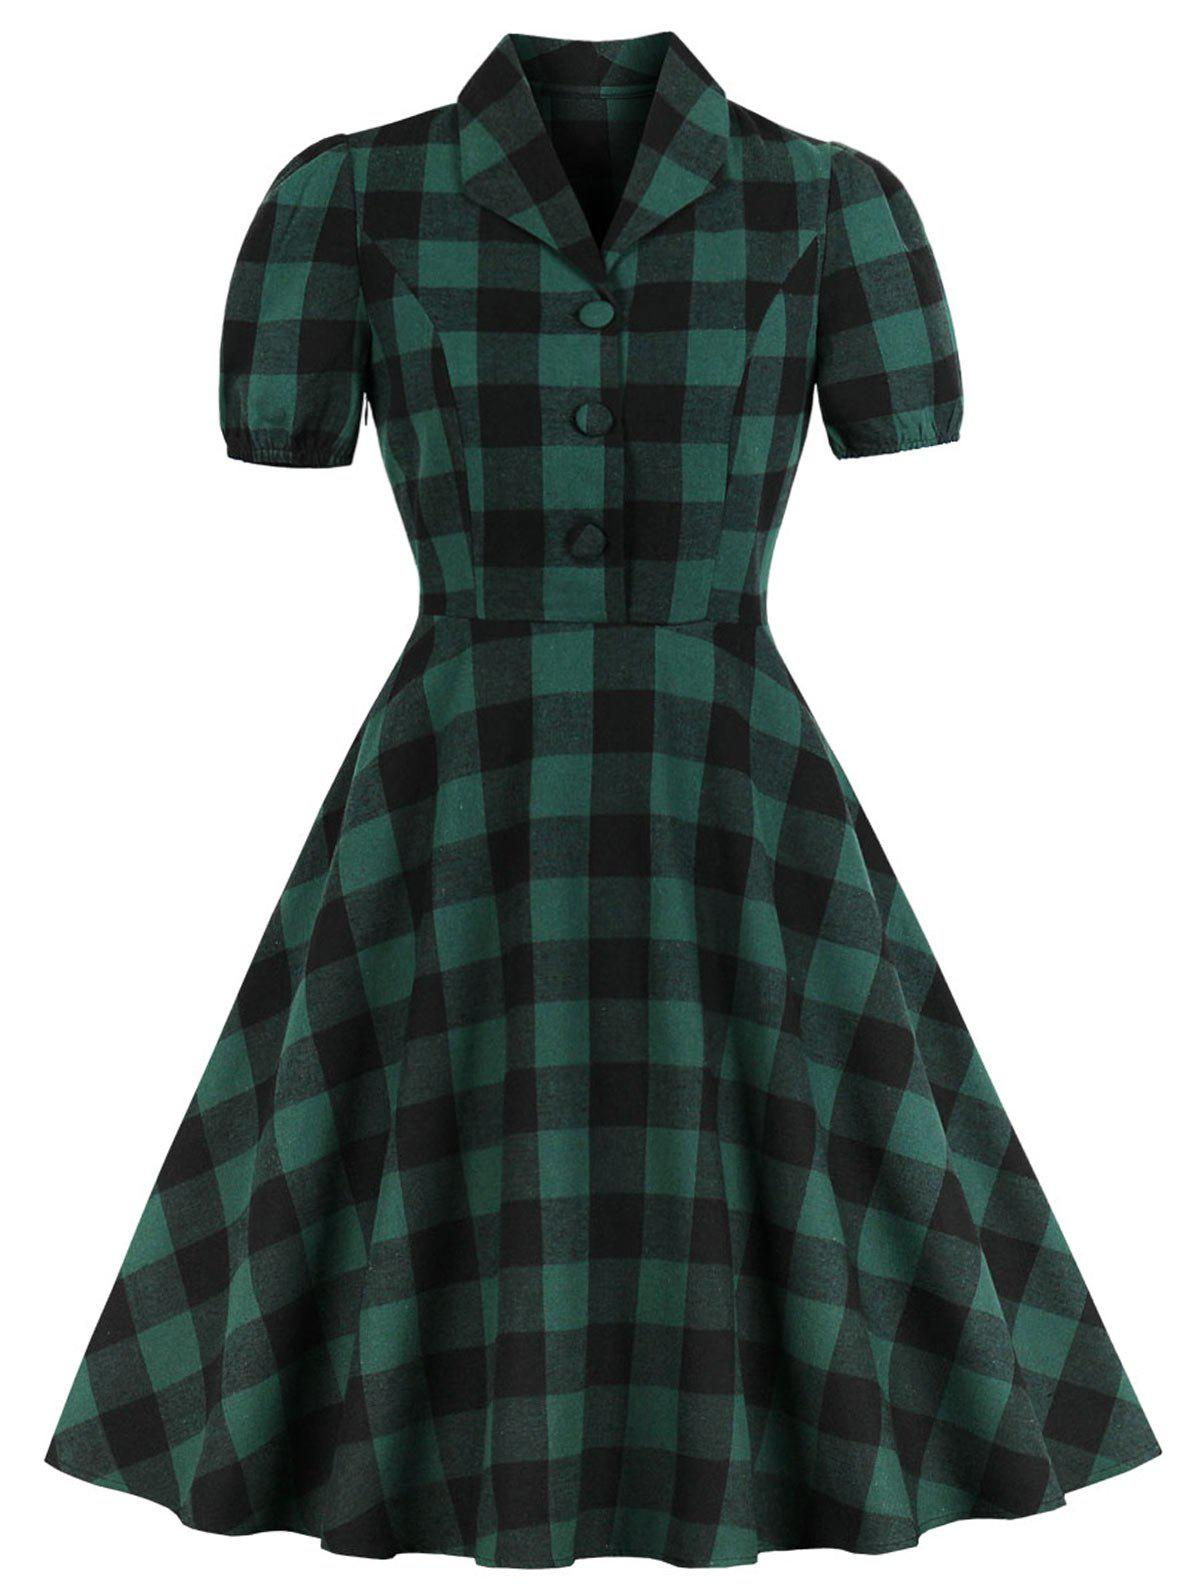 Trendy Vintage Shawl Collar Buttons Plaid Pin Up Dress